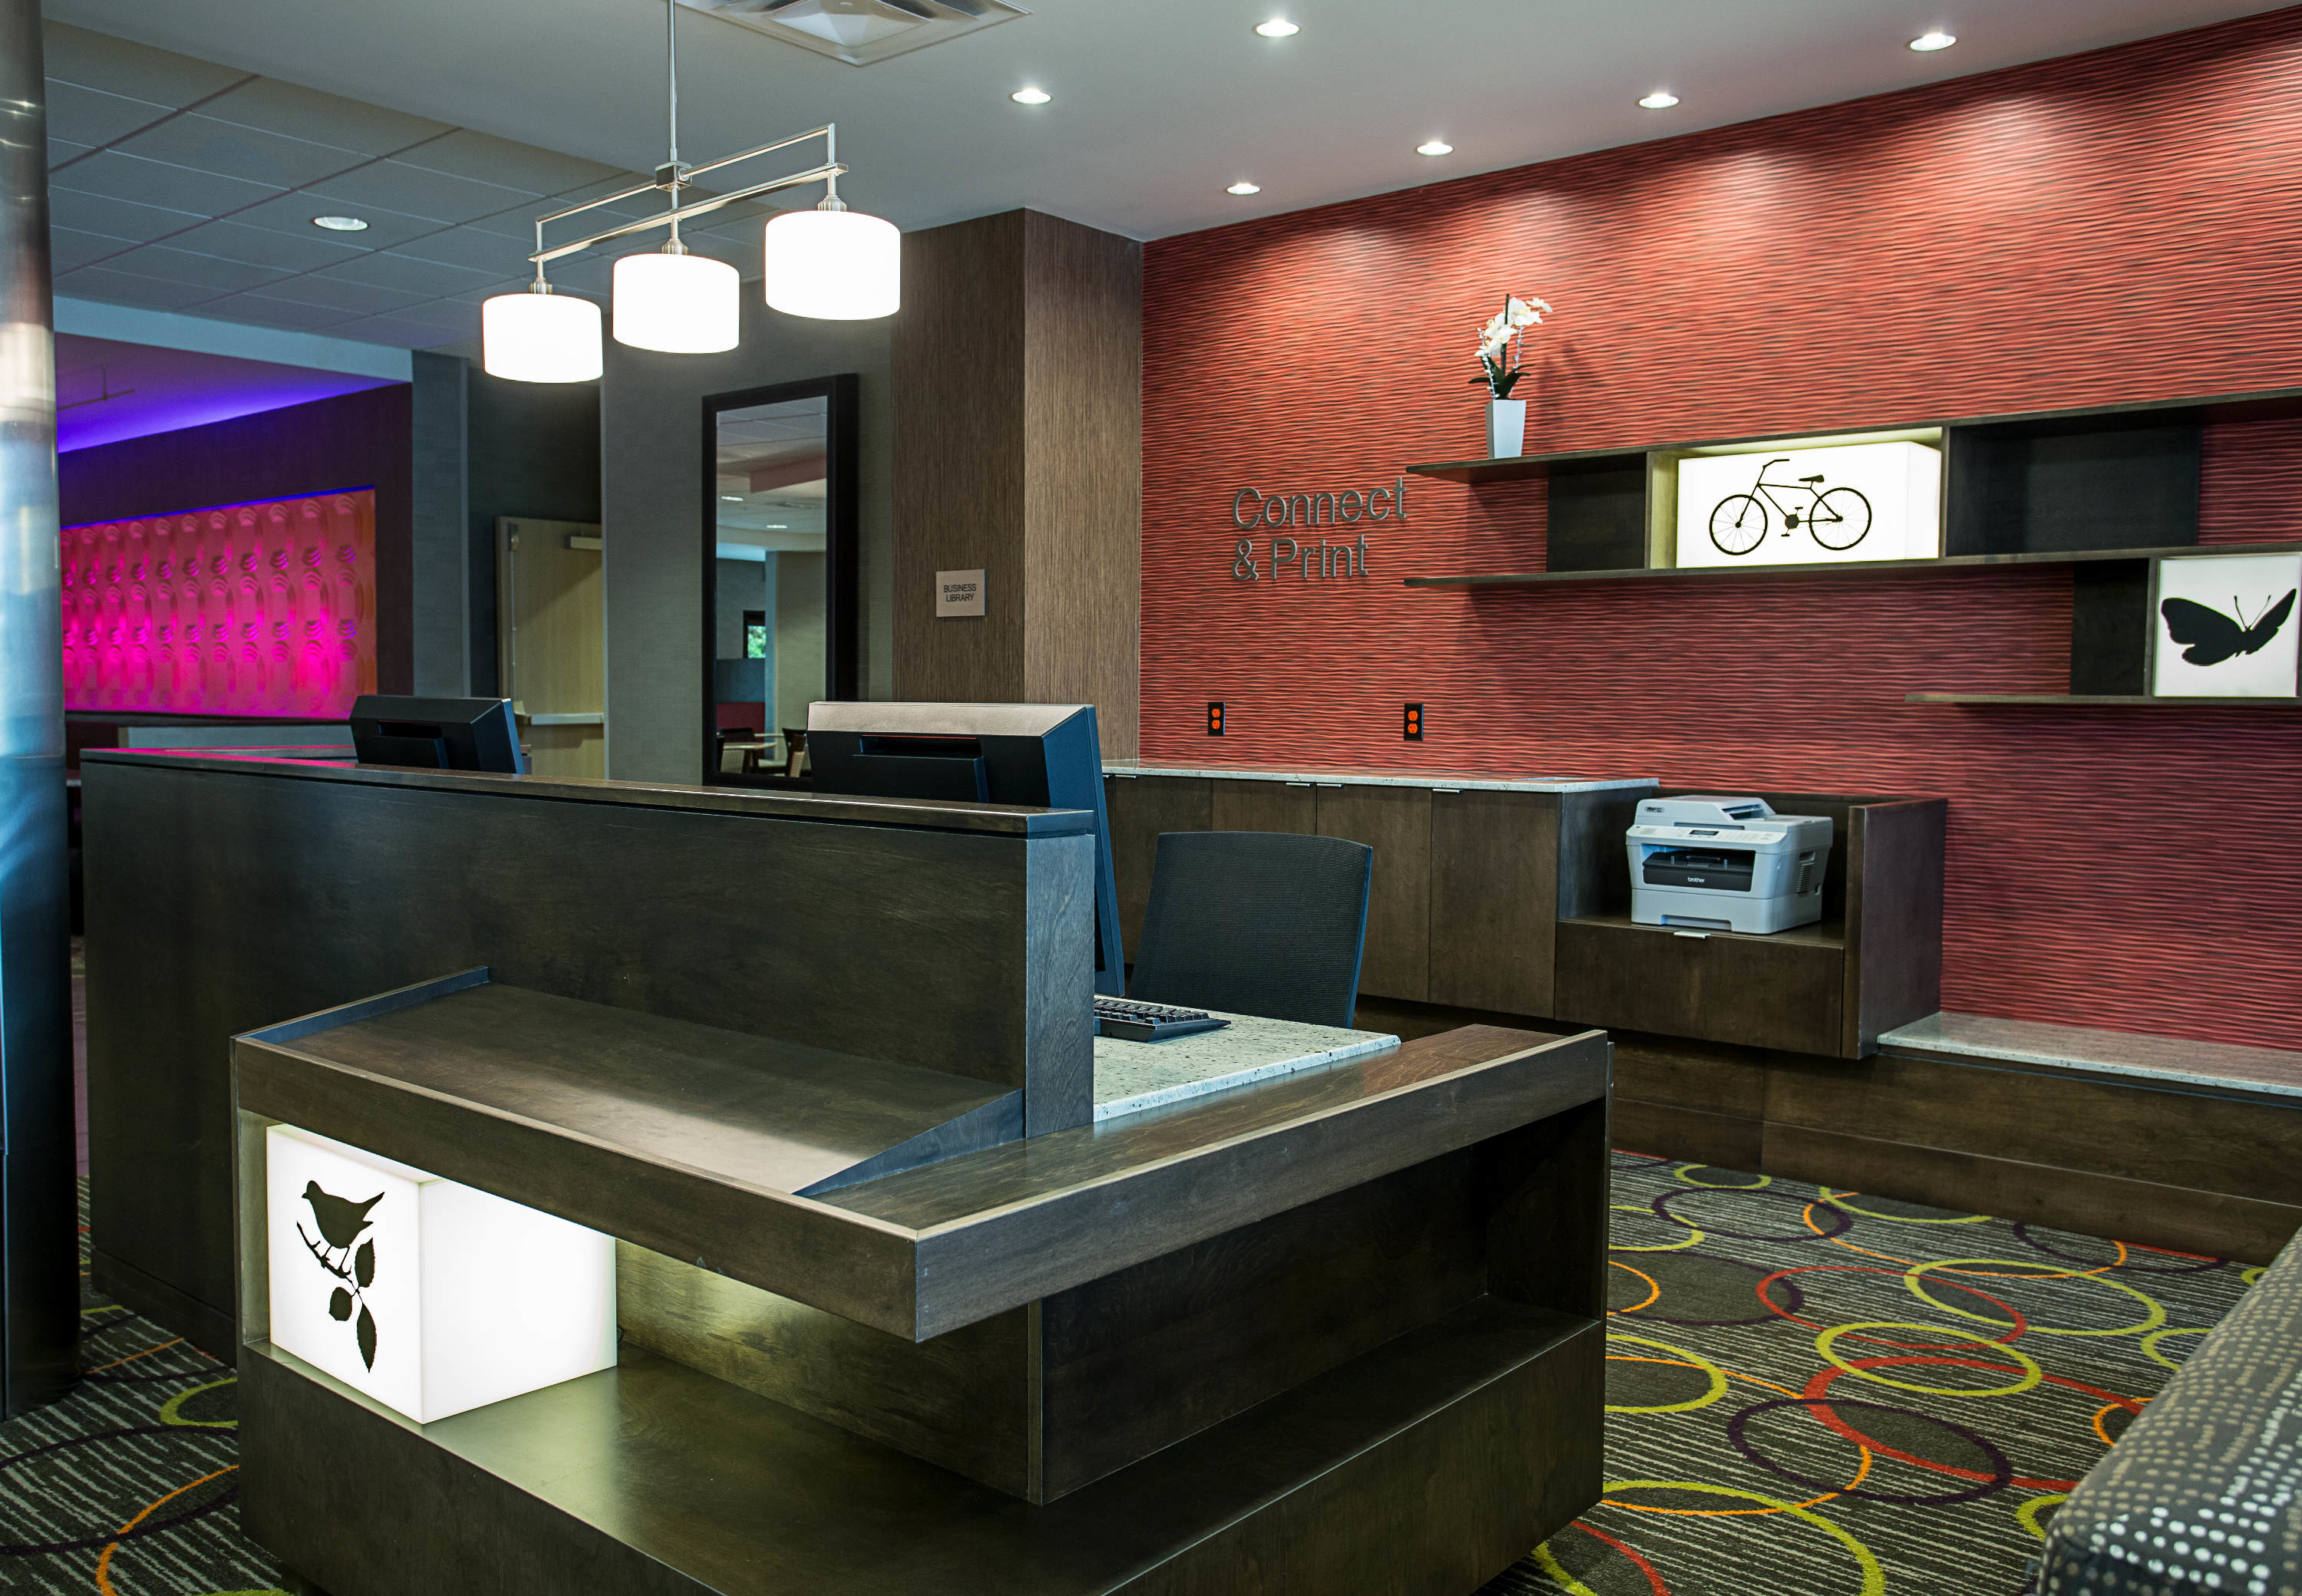 Fairfield Inn & Suites by Marriott Moscow image 4